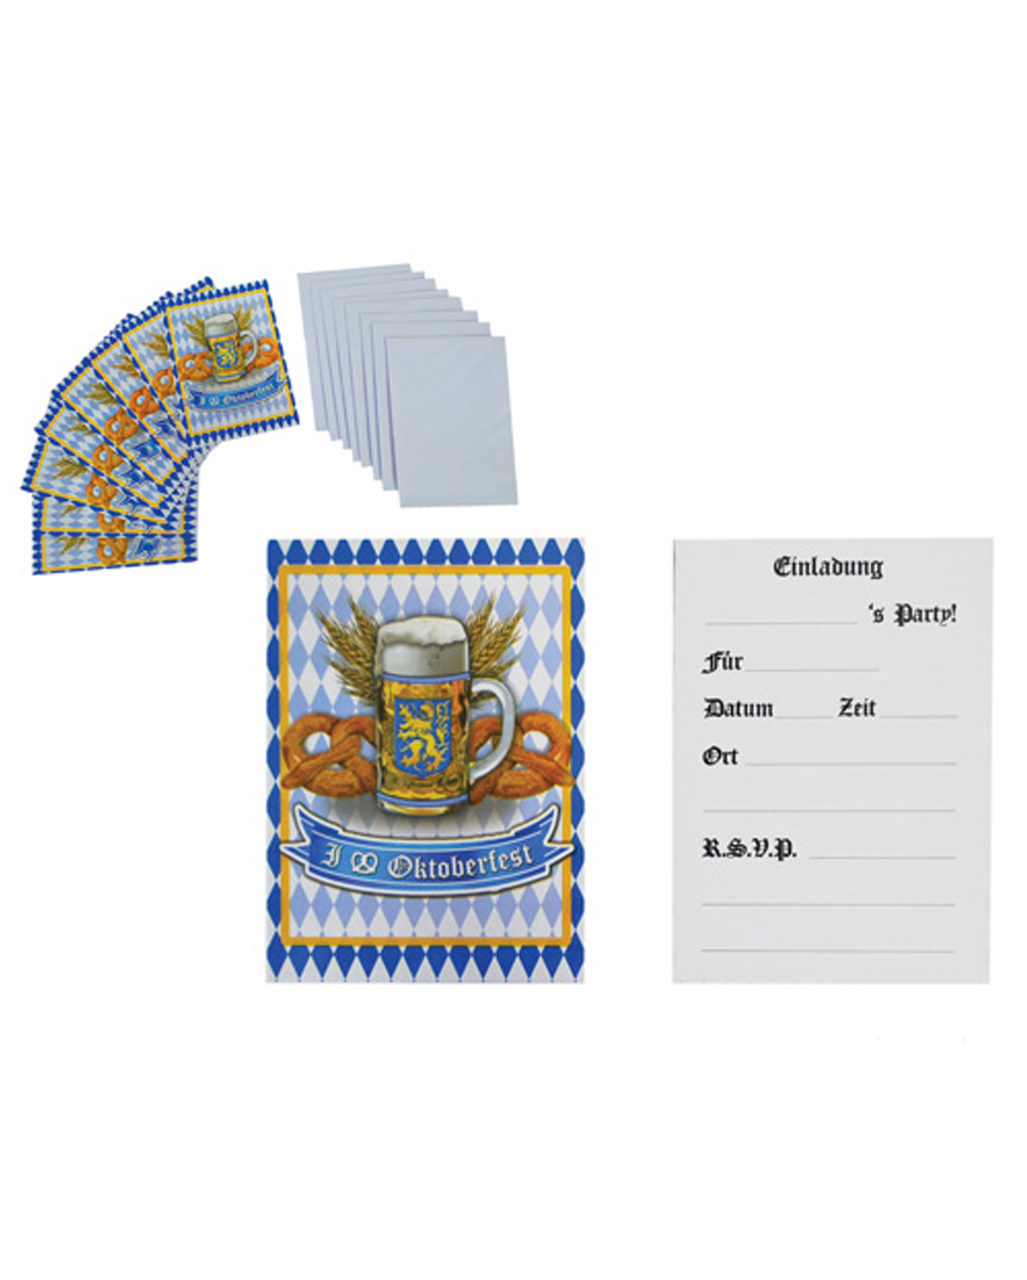 Oktoberfest Party Invitations 8 pc. ◇◇ for Beerfest | horror-shop.com